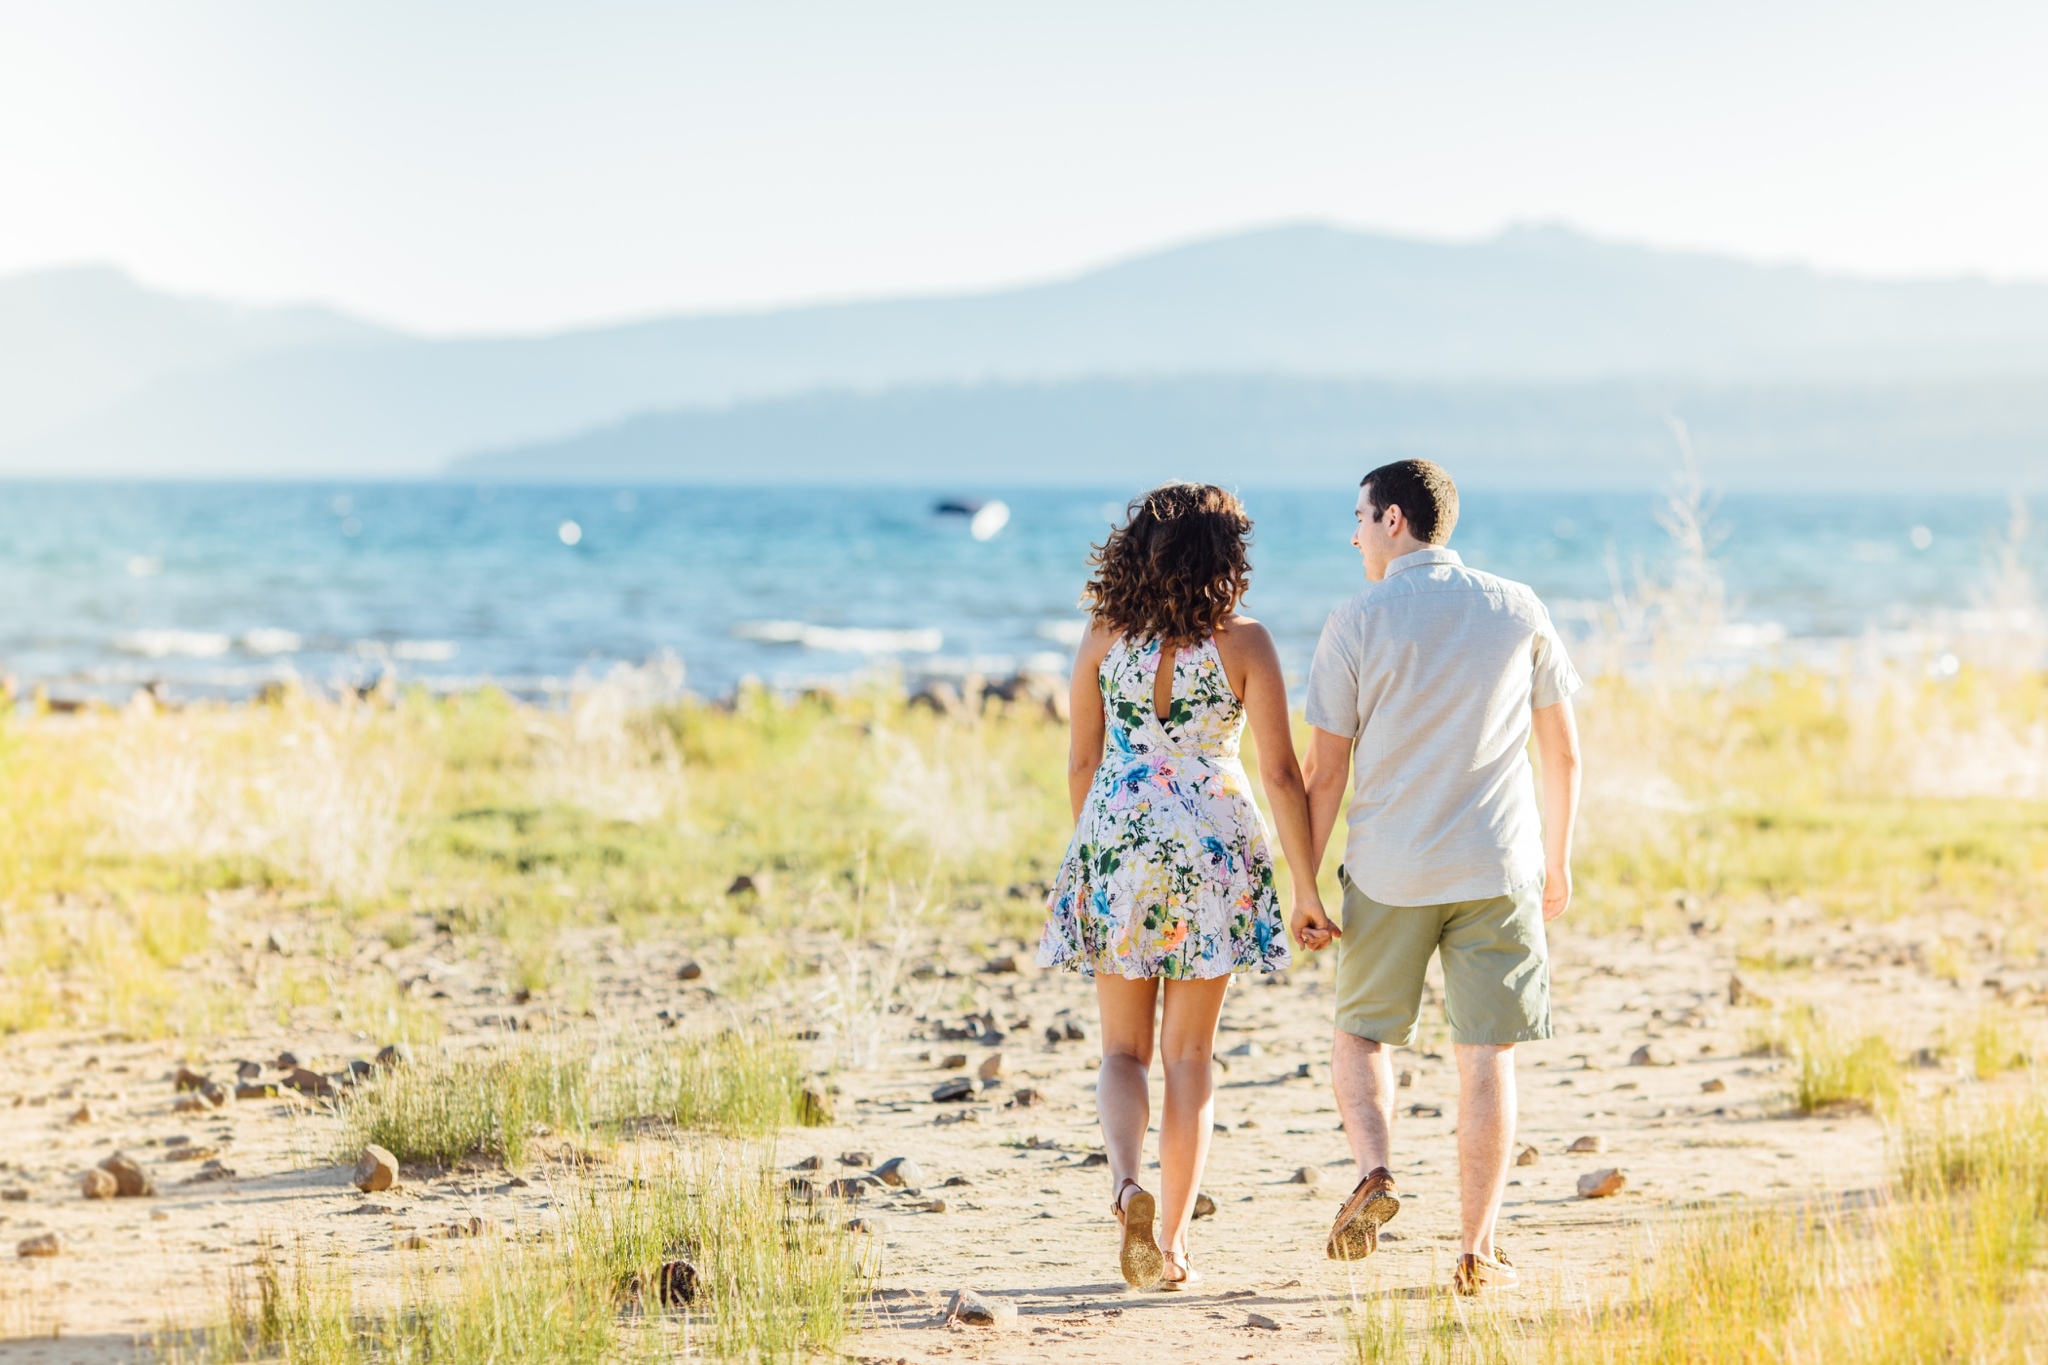 thedelauras_ostaraphotography_laketahoeengagement_laketahoeweddingphotograph_laketahoe_photographer_014